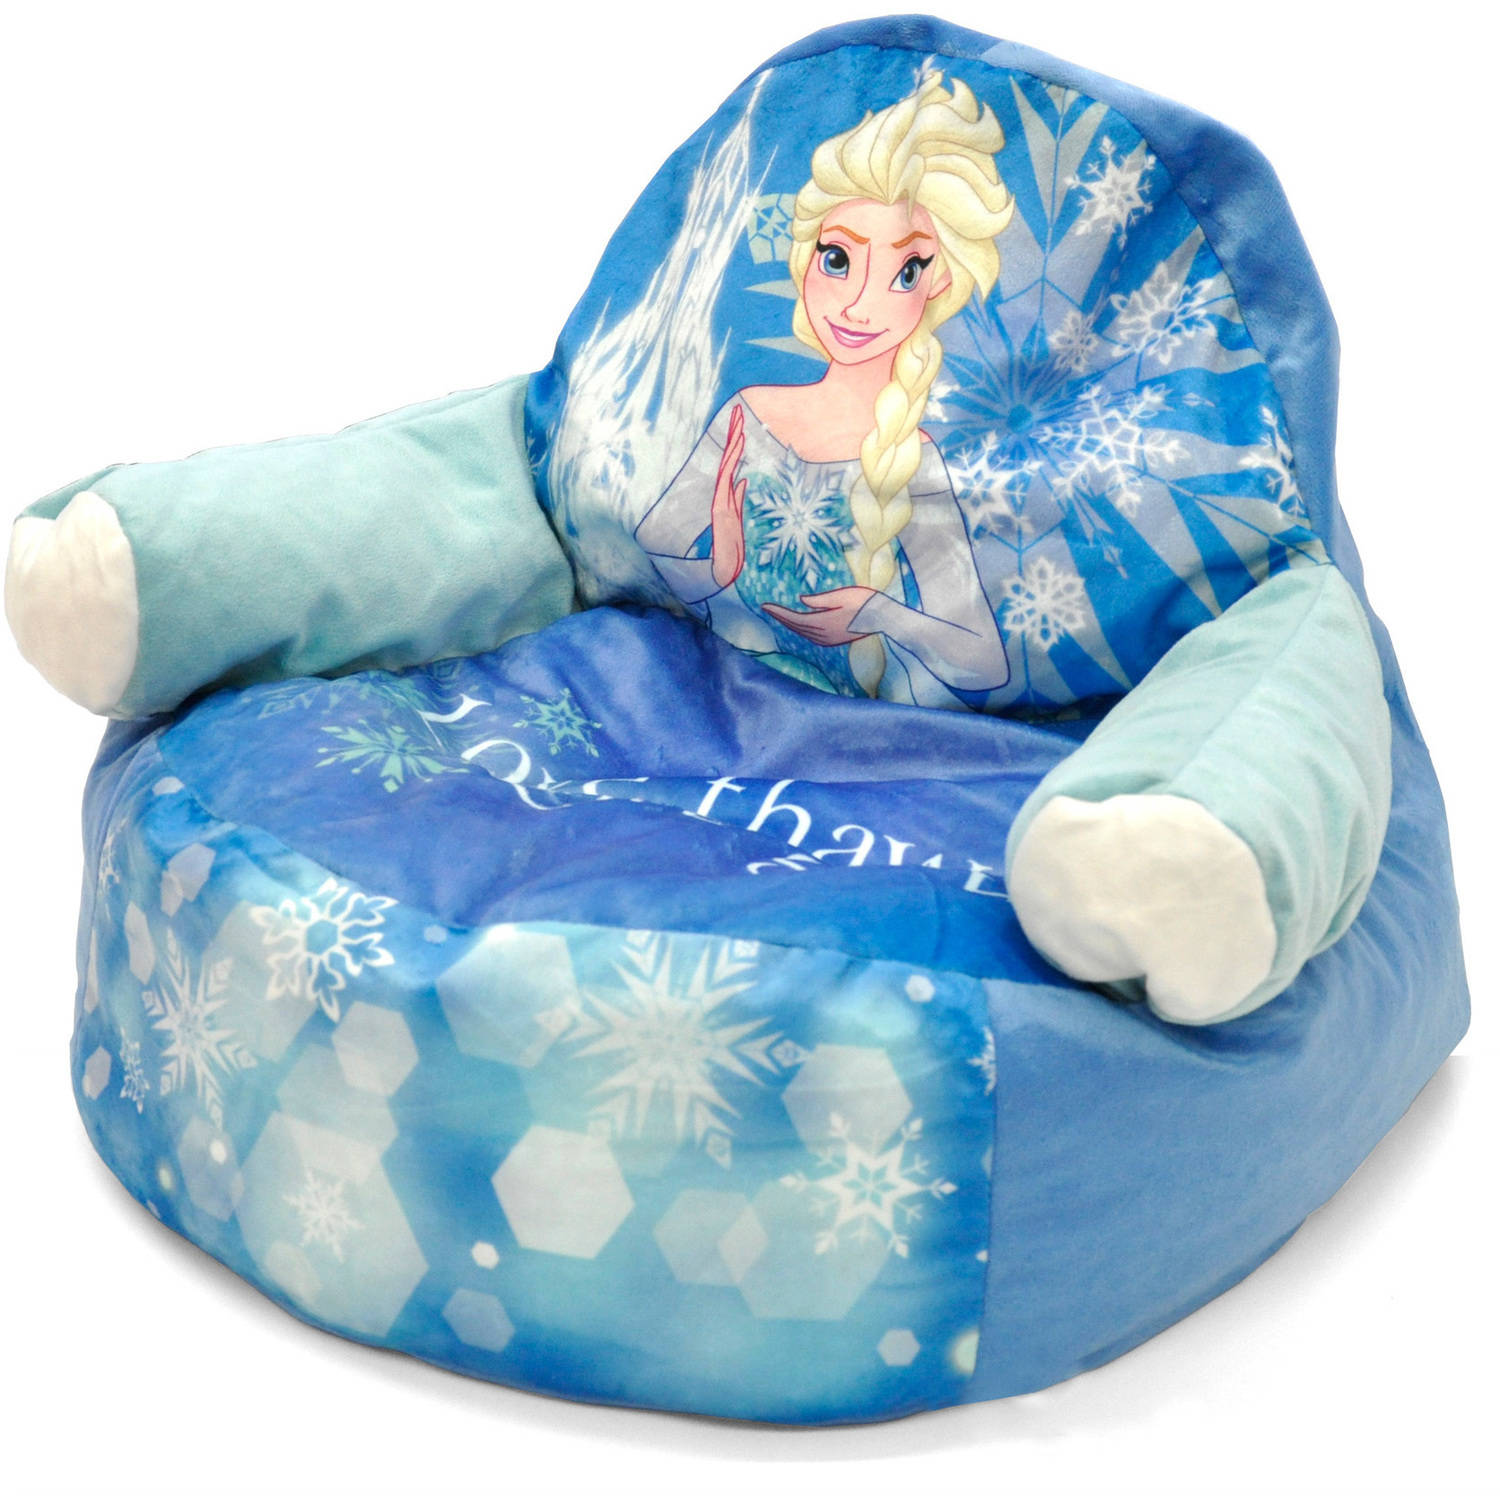 bean bag chair for toddler revolving steel base with wheels frozen elsa character figural walmart com